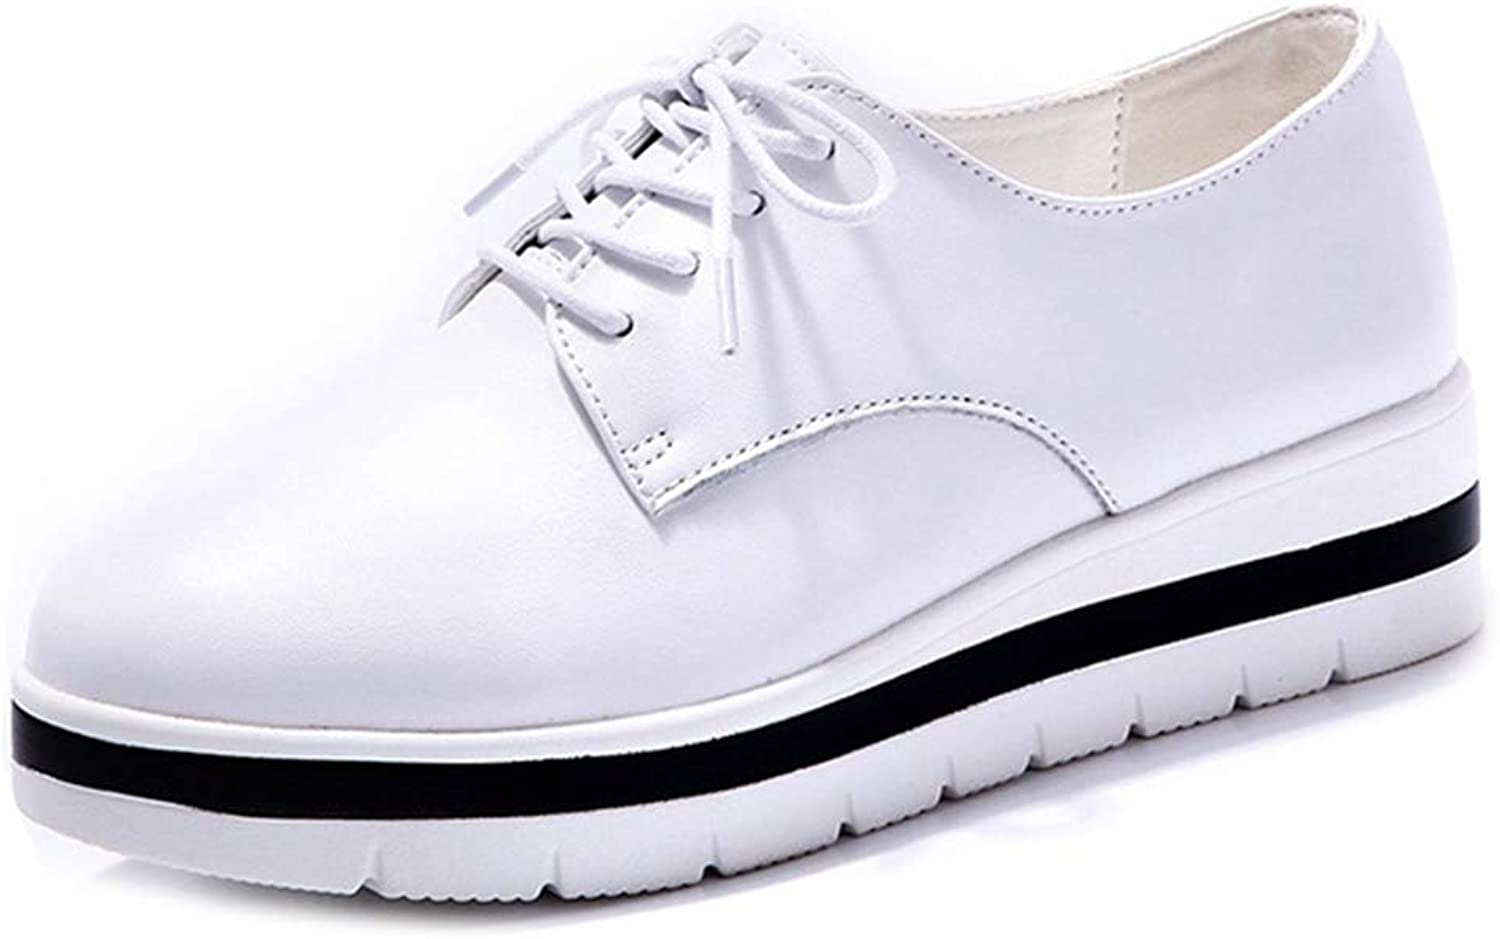 GIY Women's Platform Oxford shoes Wingtip Lace Up Chunky Mid Heel Casual Comfy Dress Wedge Oxfords